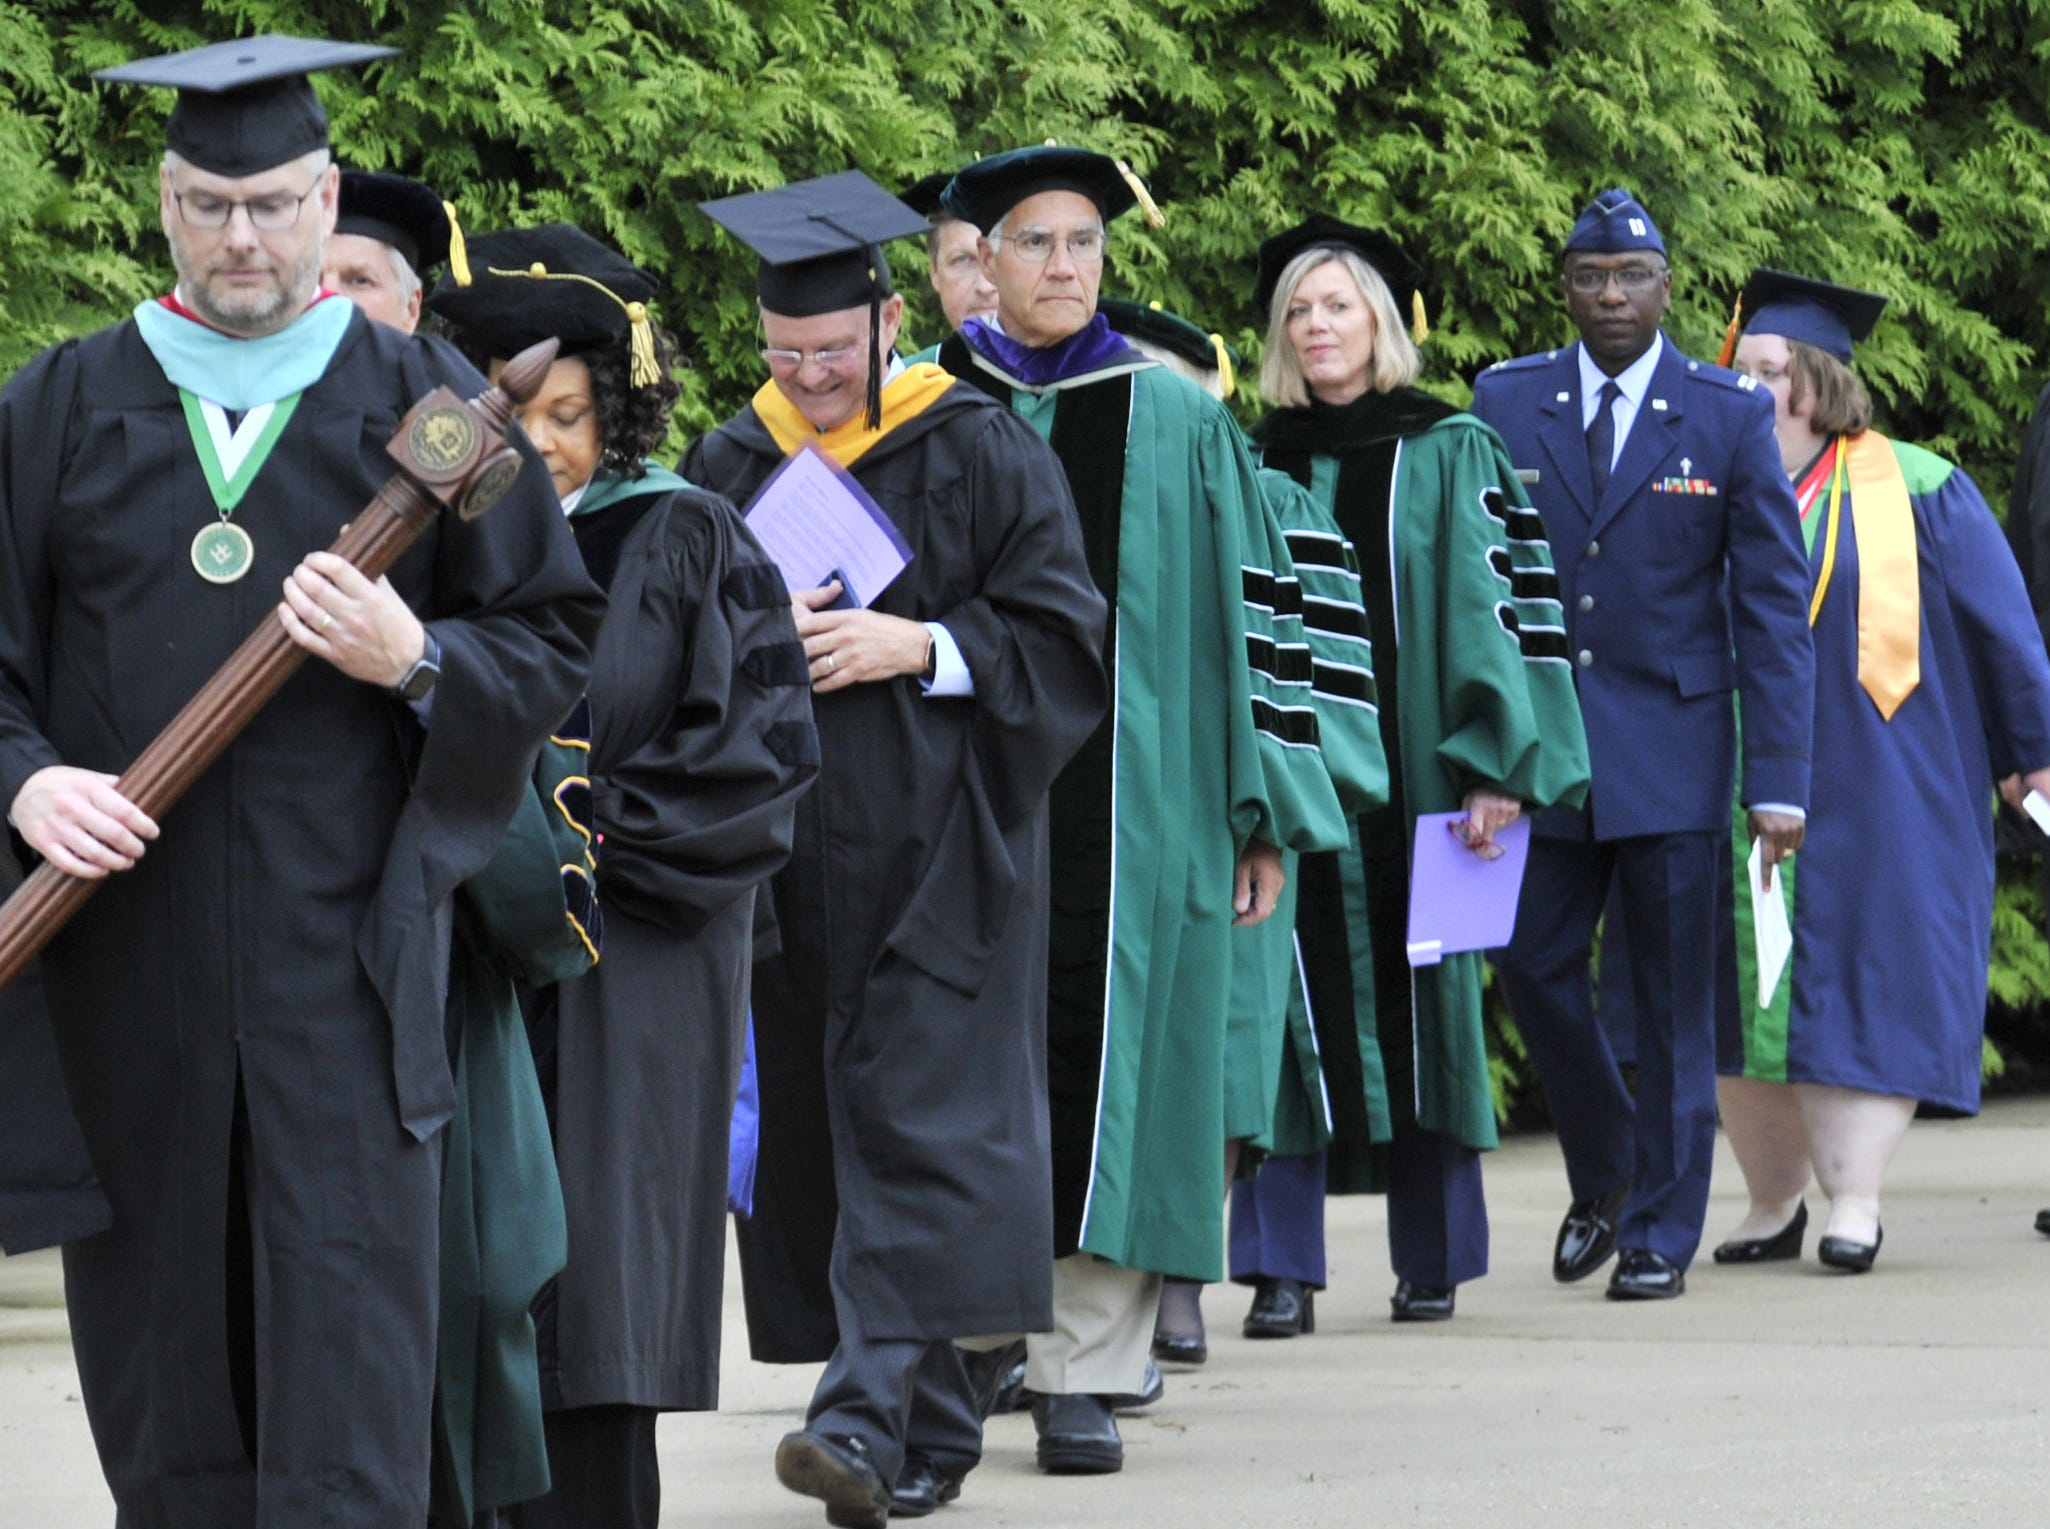 Procession from the main building to huge tent outside for Monday night's DelTech Terry Campus commencement.